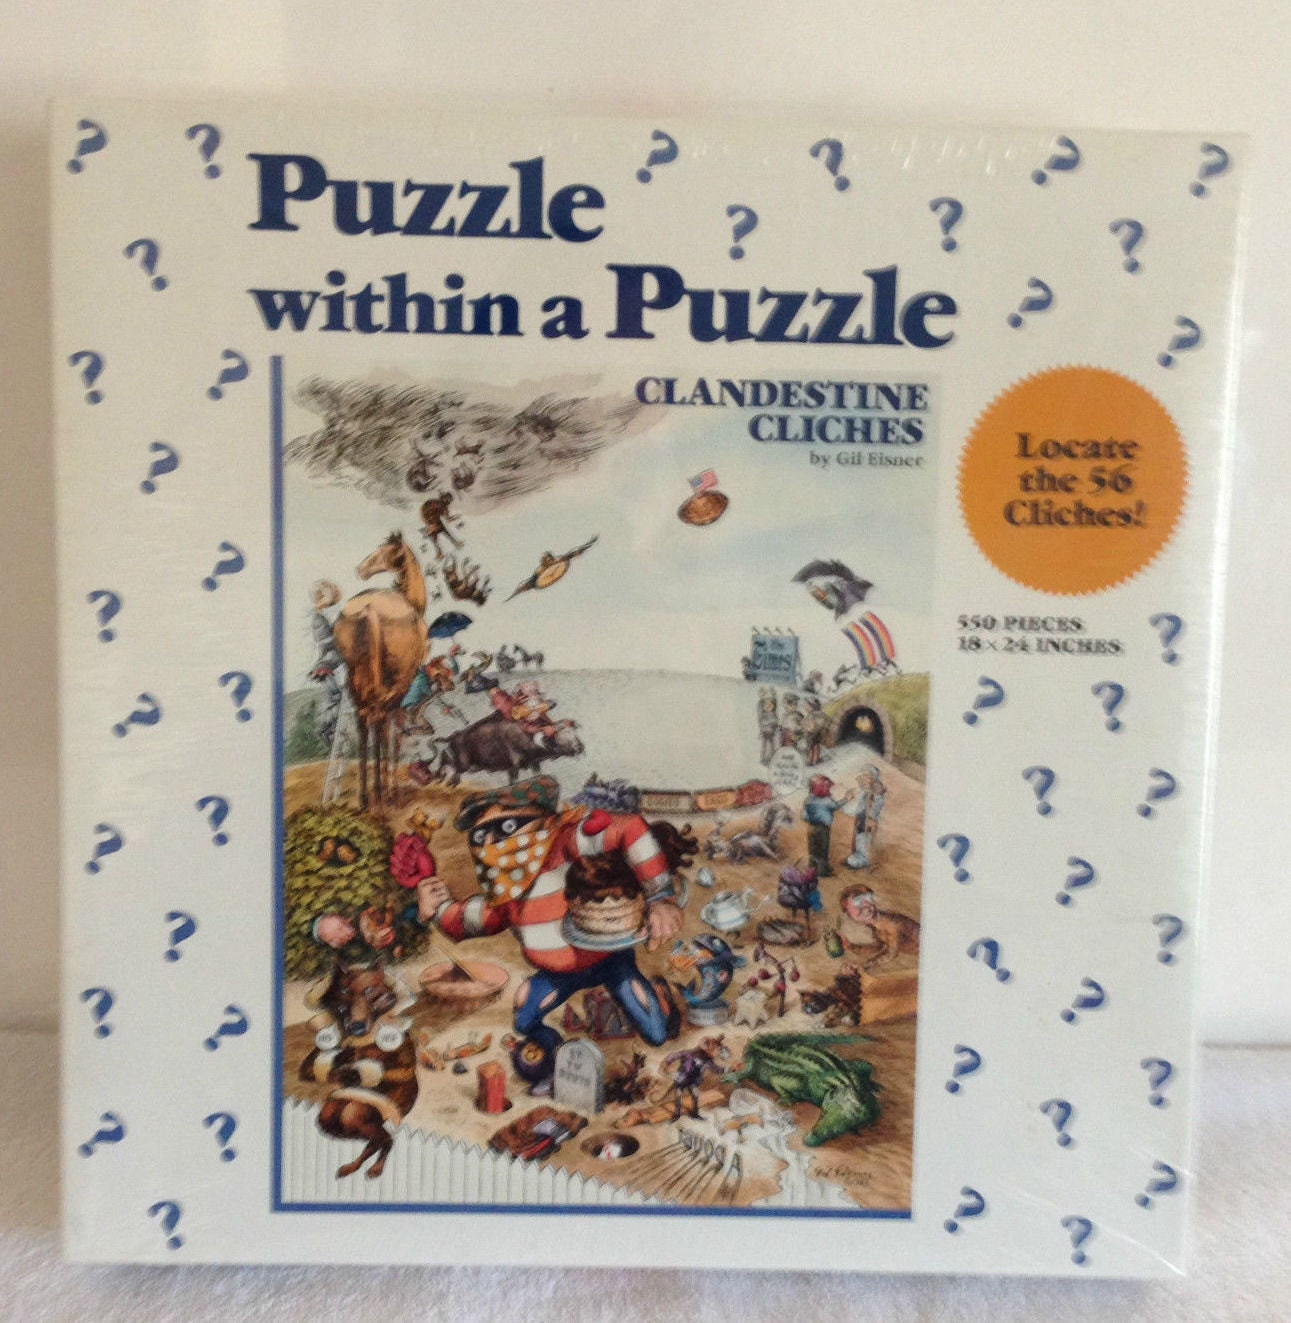 Vintage Clandestine Cliches Jigsaw Puzzle Within A Puzzle By